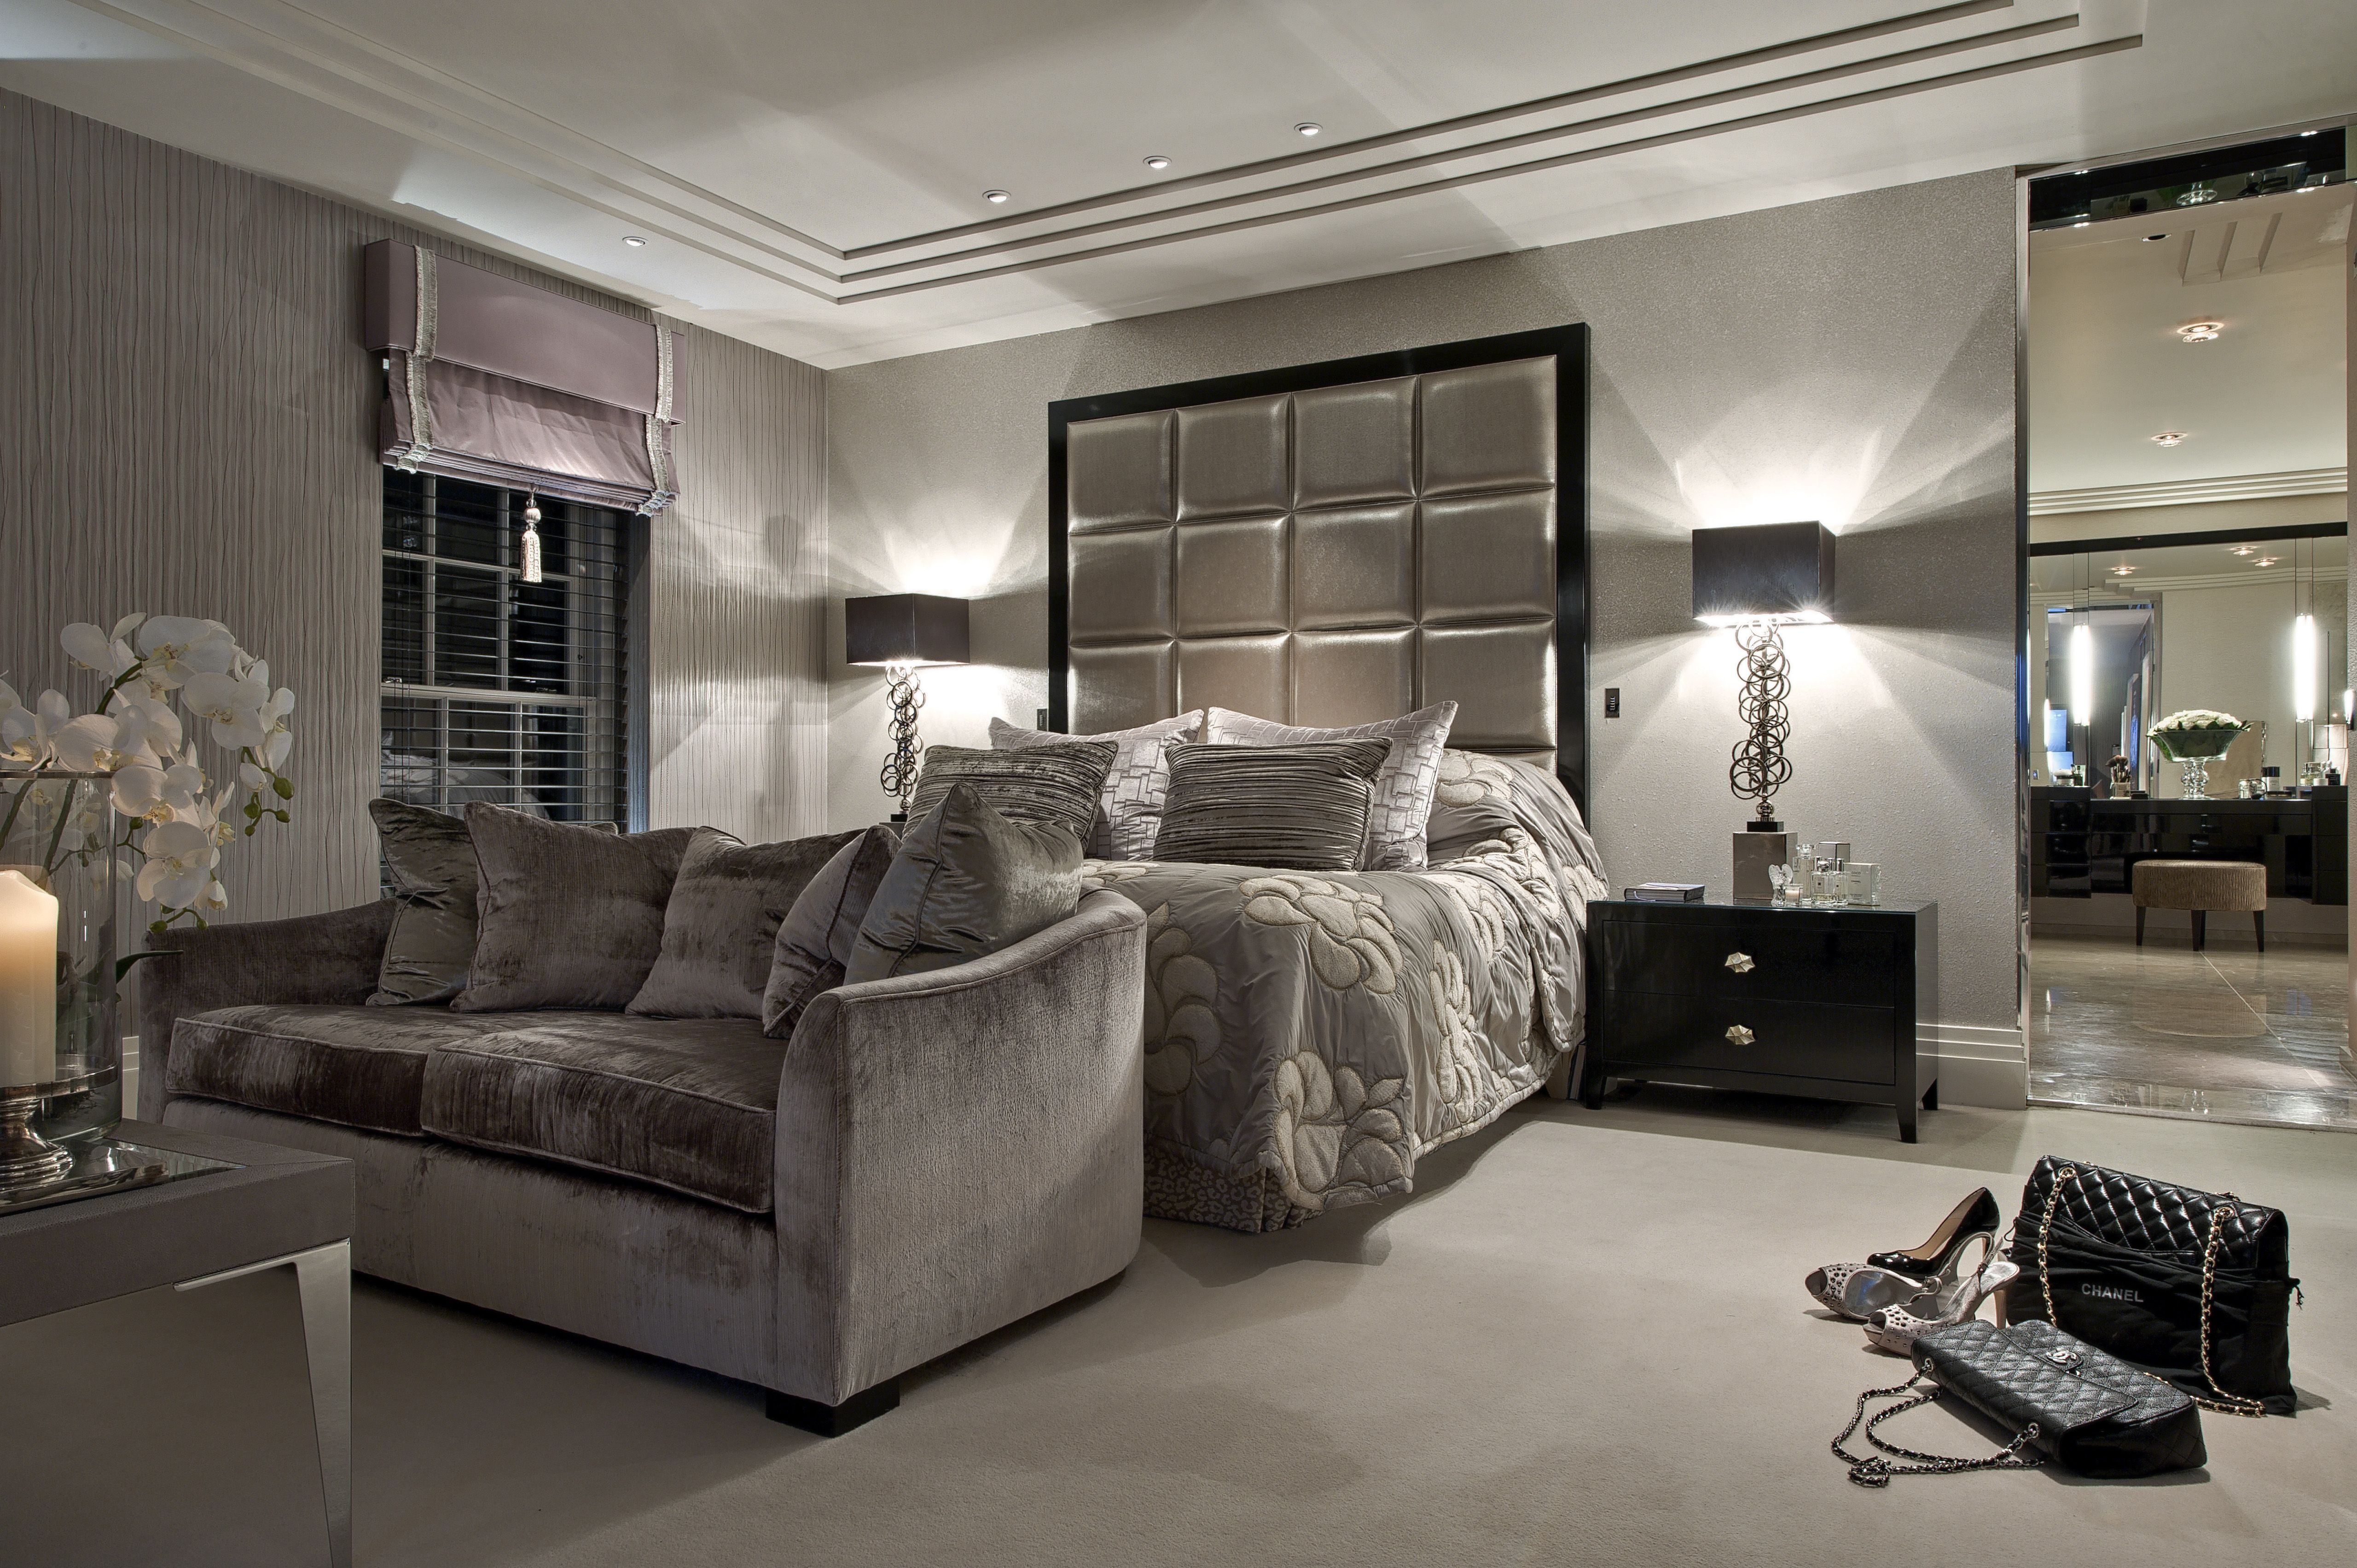 Interier Bedroom Master Bedroom Suite Hill House Interiors Homes